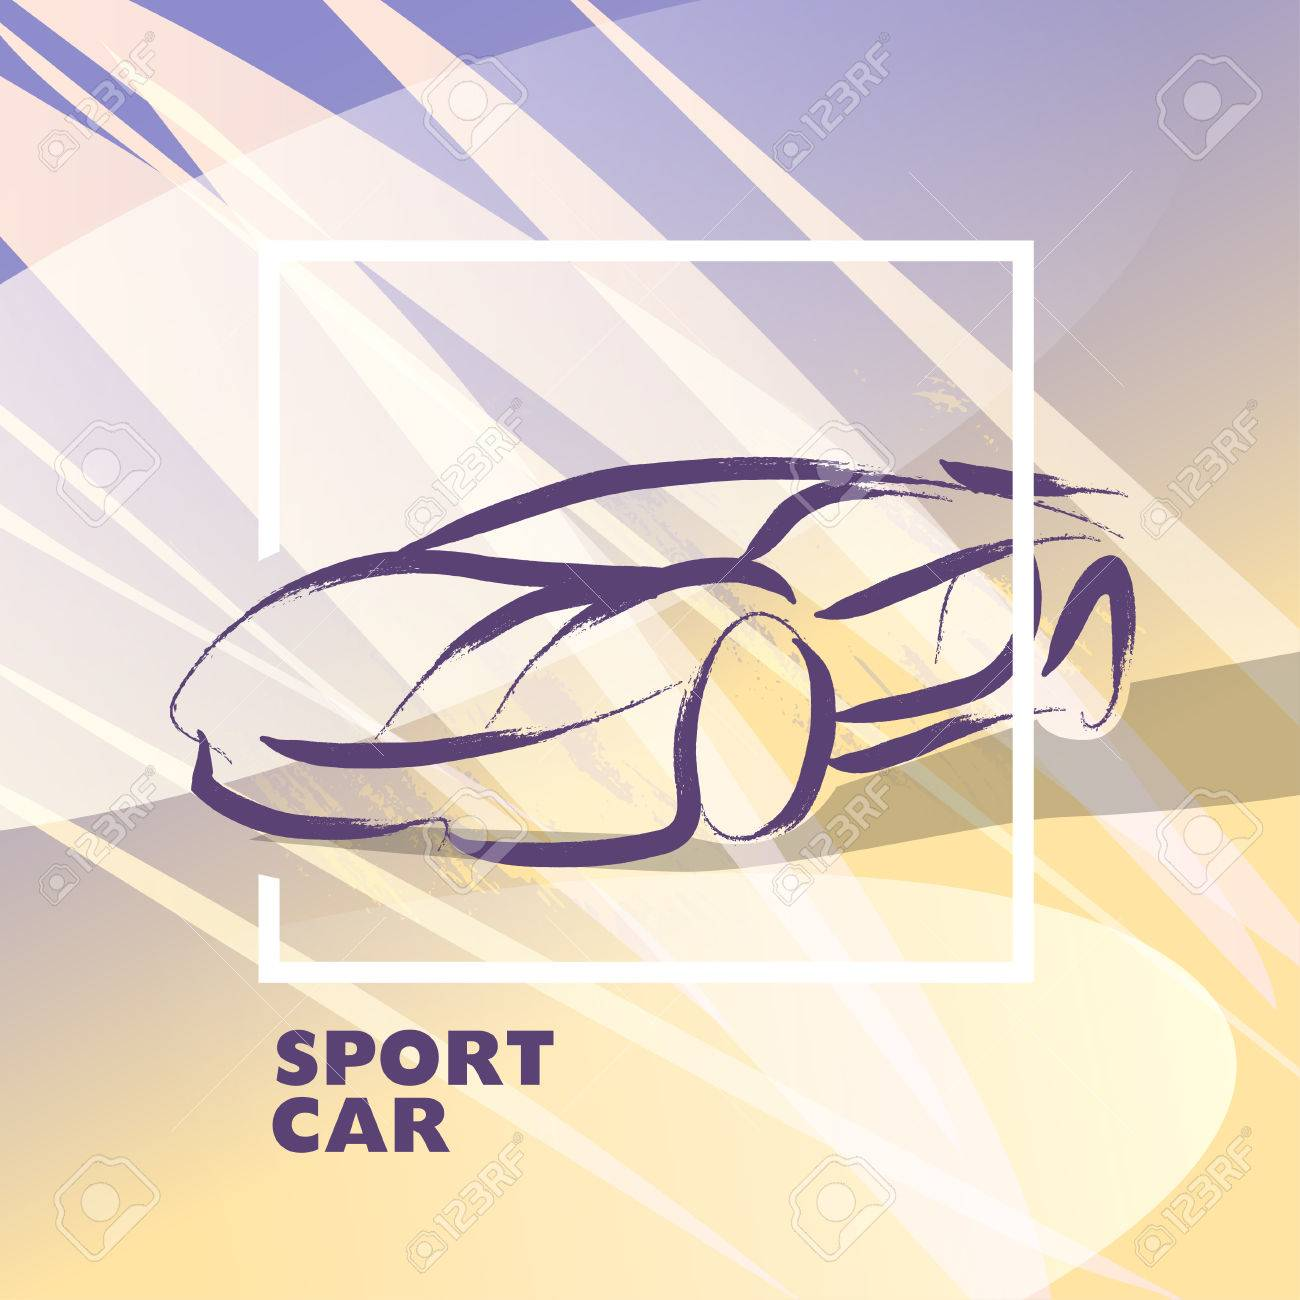 Vector Car Sketch Isolated Hand Drawn Car Body Auto Advertising